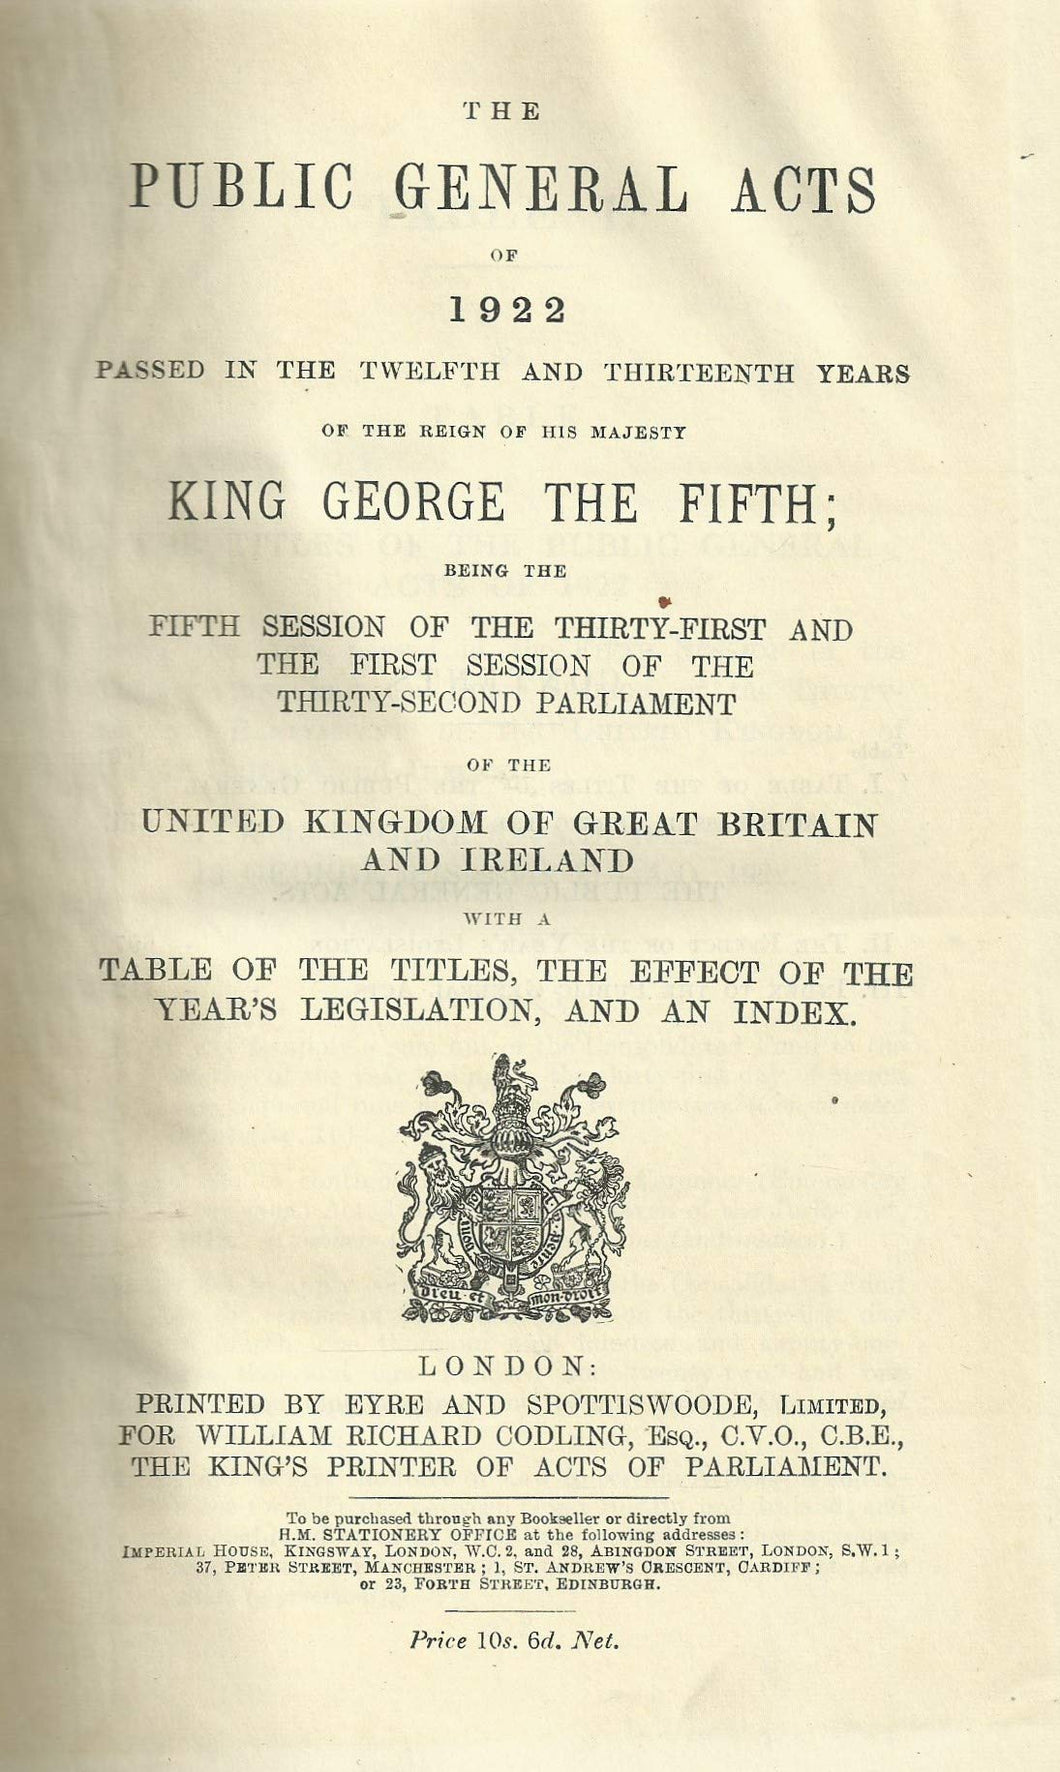 The Public General Acts and the Church Assembly Measures of 1922